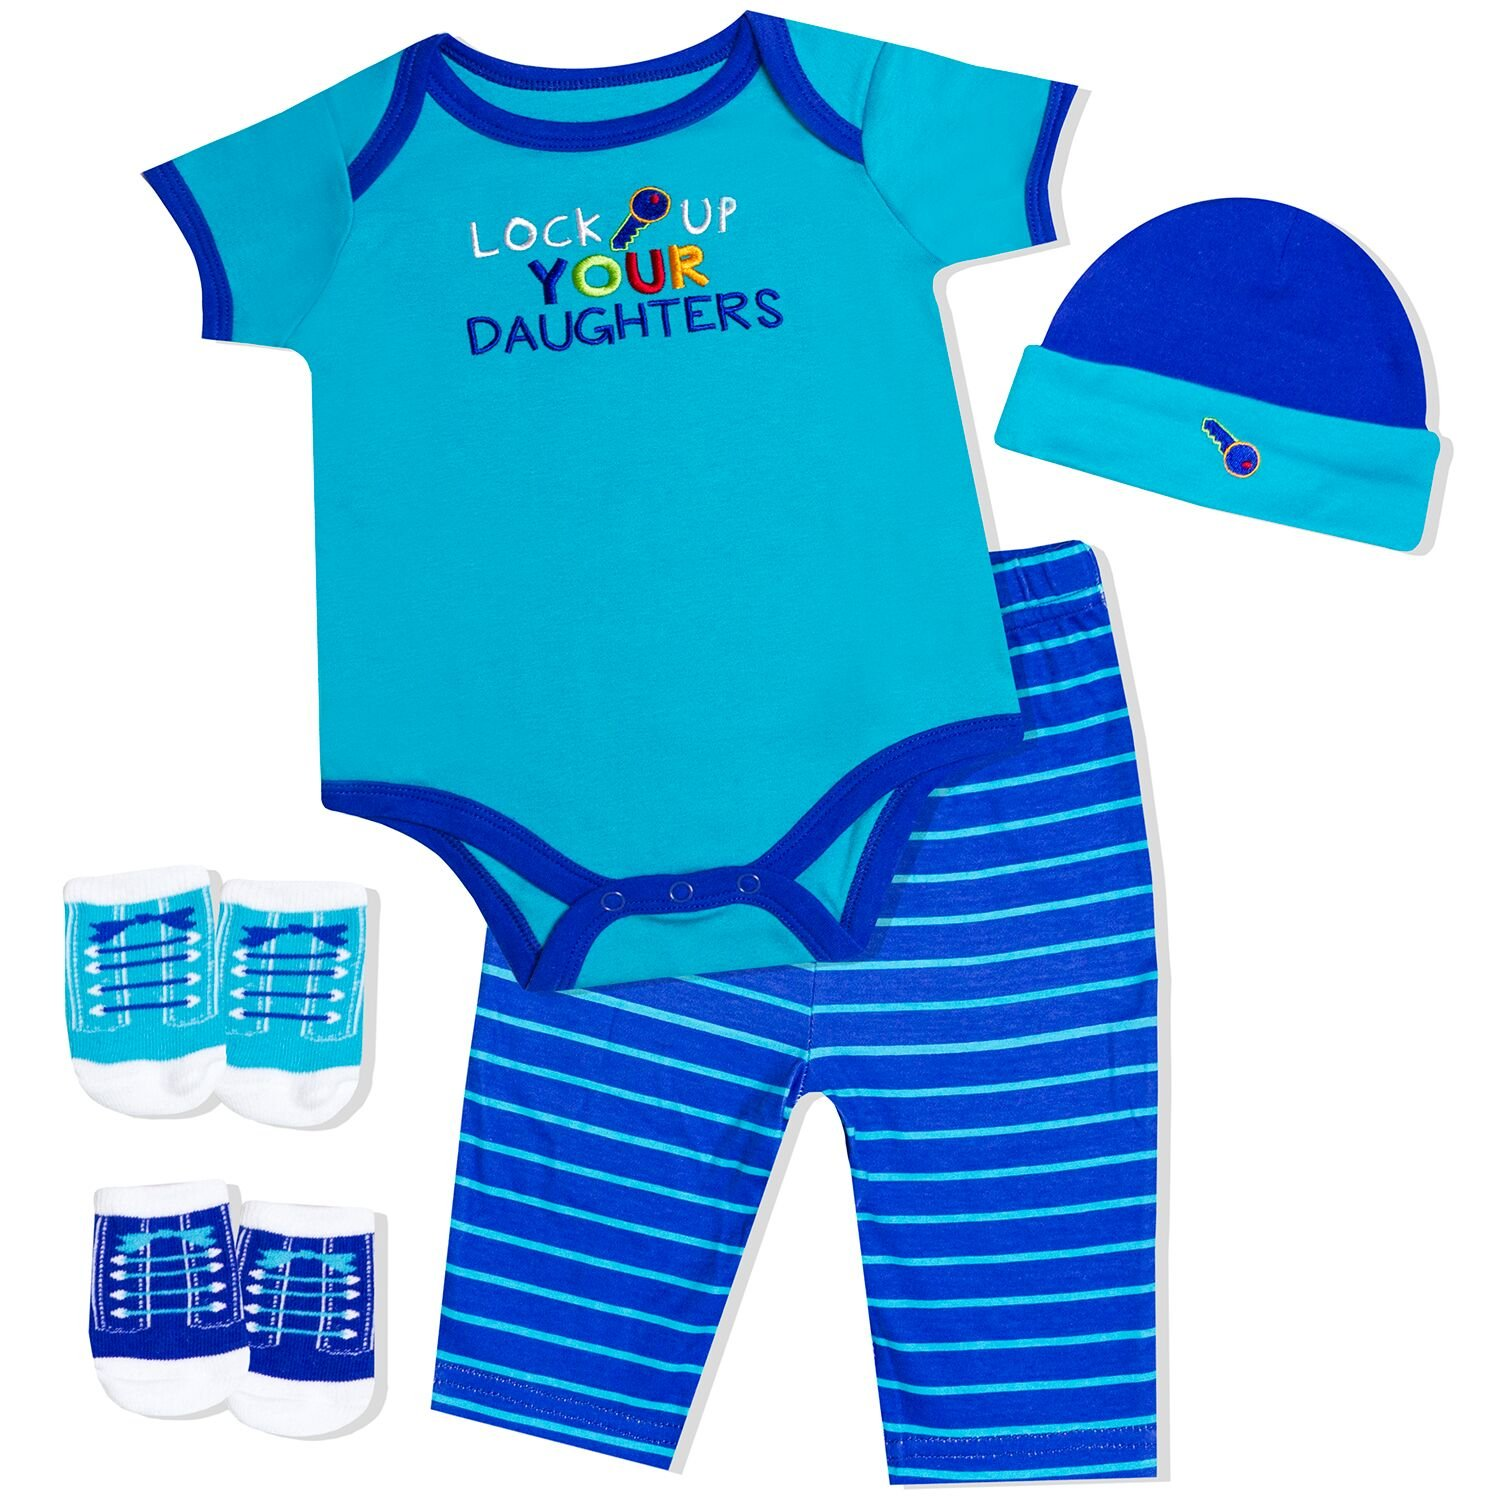 Baby Essentials Baby Boys' Lock 5-Piece Layette Gift Set 3 - 6 months BE-Layette-61917